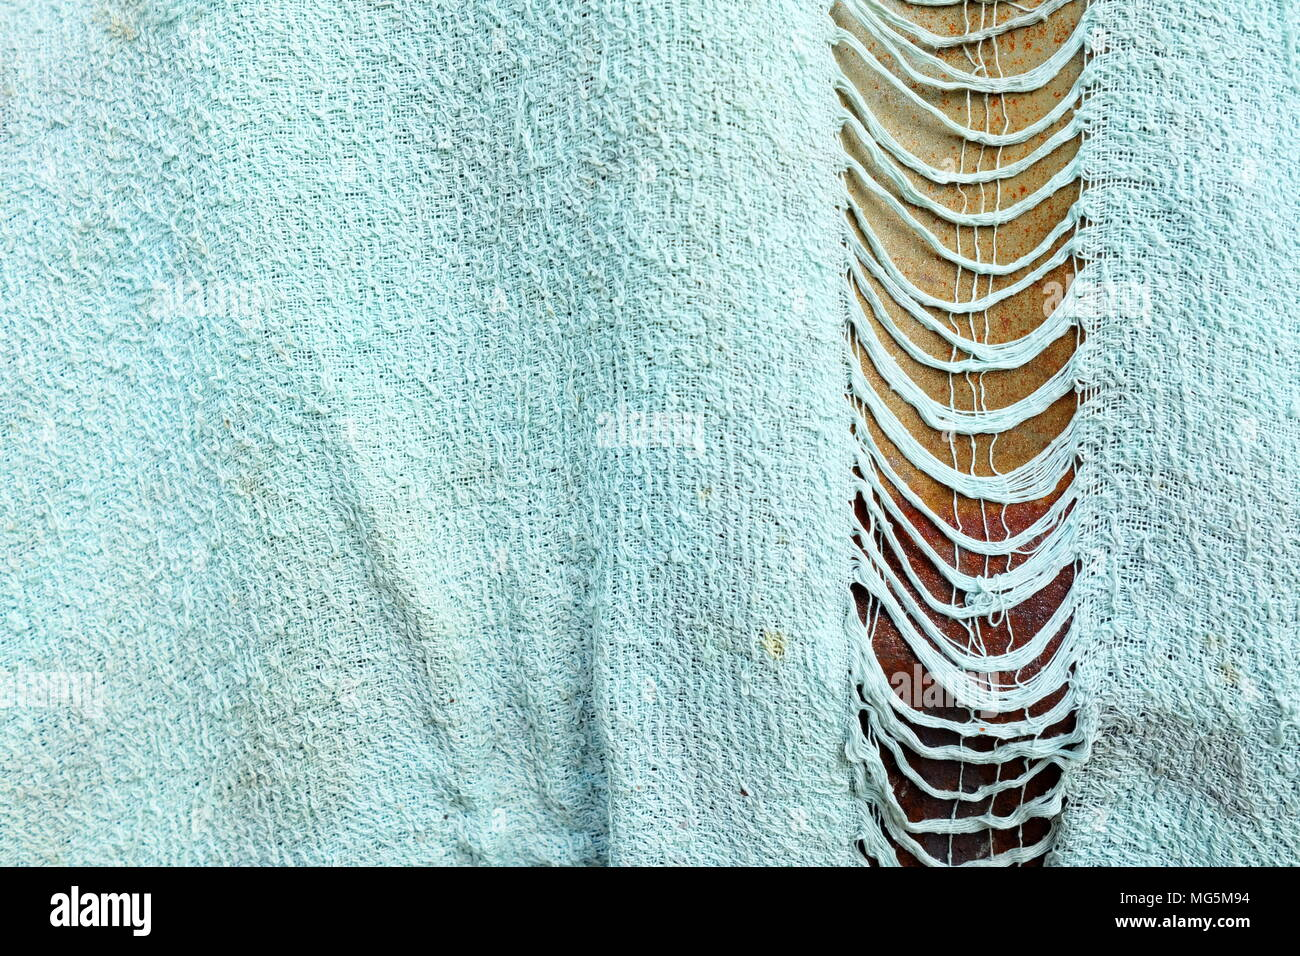 366be3742a Old Dirty Torn Rag Background Stock Photo: 182063872 - Alamy